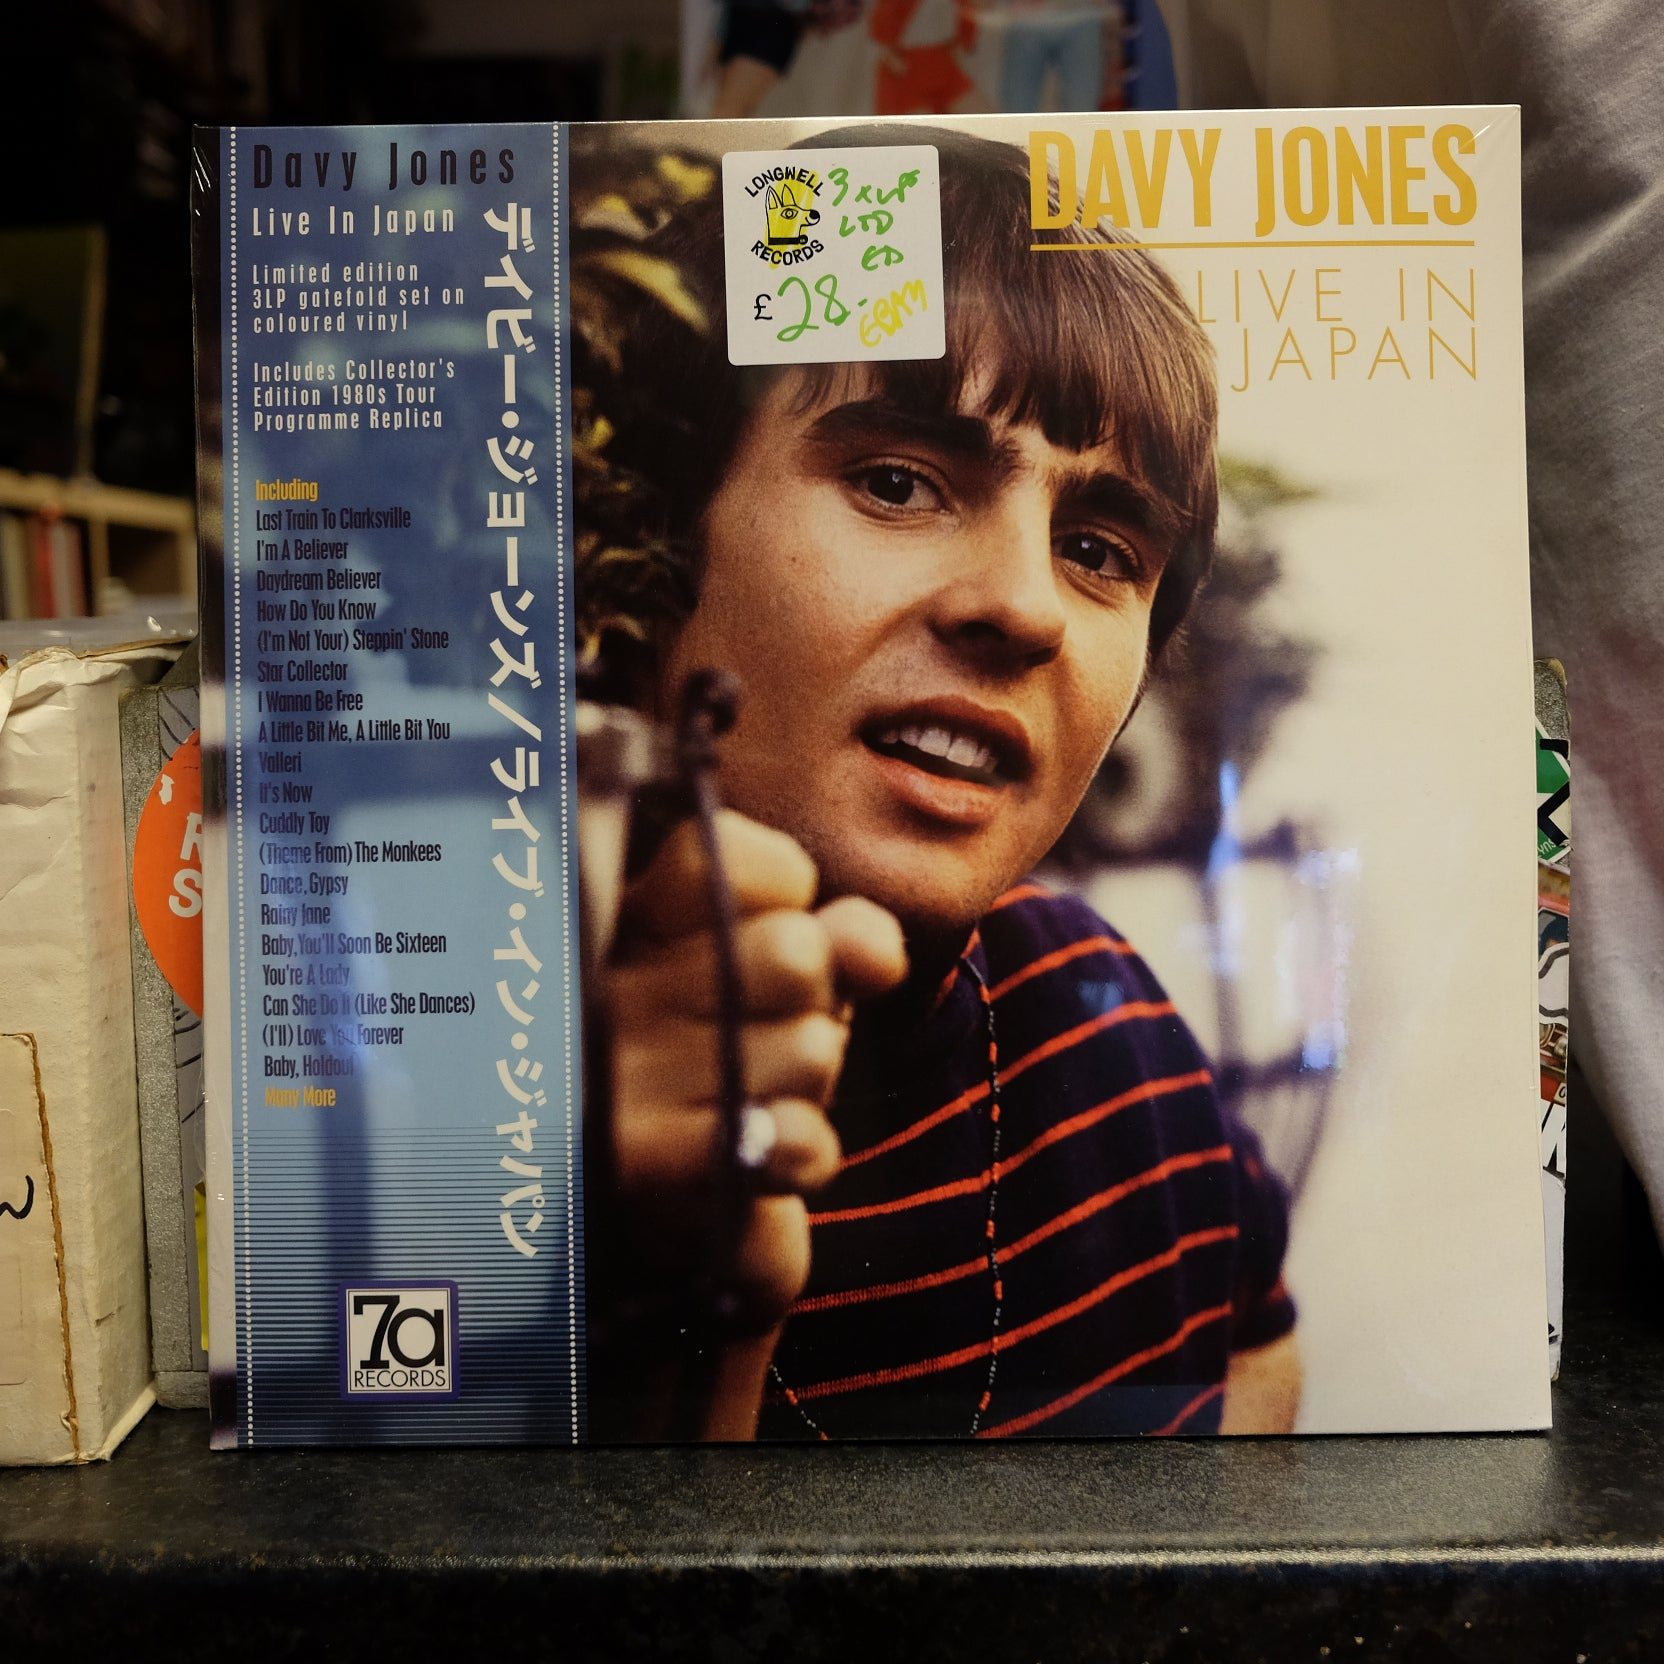 DAVY JONES LIVE IN JAPAN 3 LP RED WHITE BLUE 7A RECORDS NEW VINYL